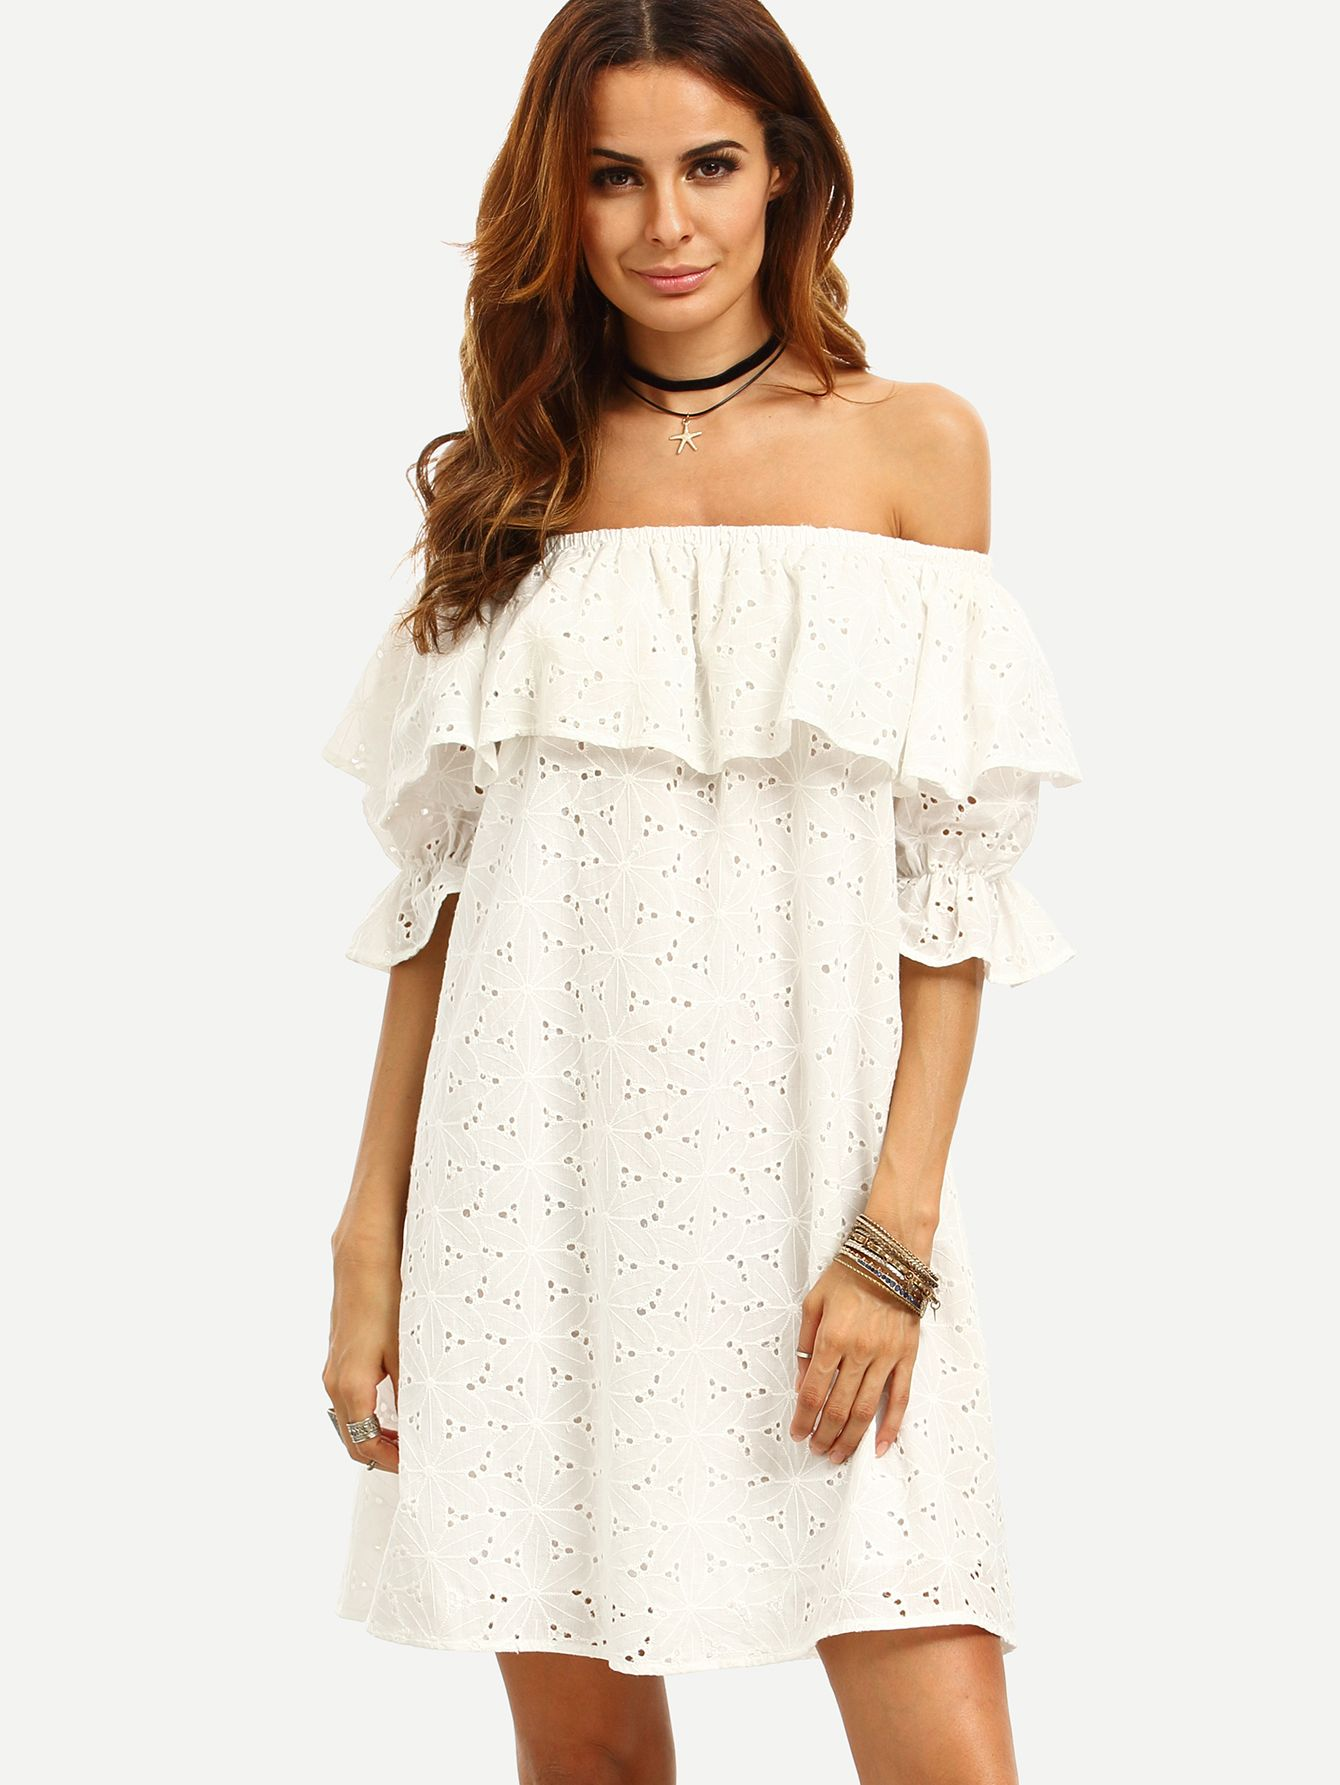 08f1c260e396 Shop White Ruffle Off The Shoulder Shift Dress online. SheIn offers White  Ruffle Off The Shoulder Shift Dress   more to fit your fashionable needs.